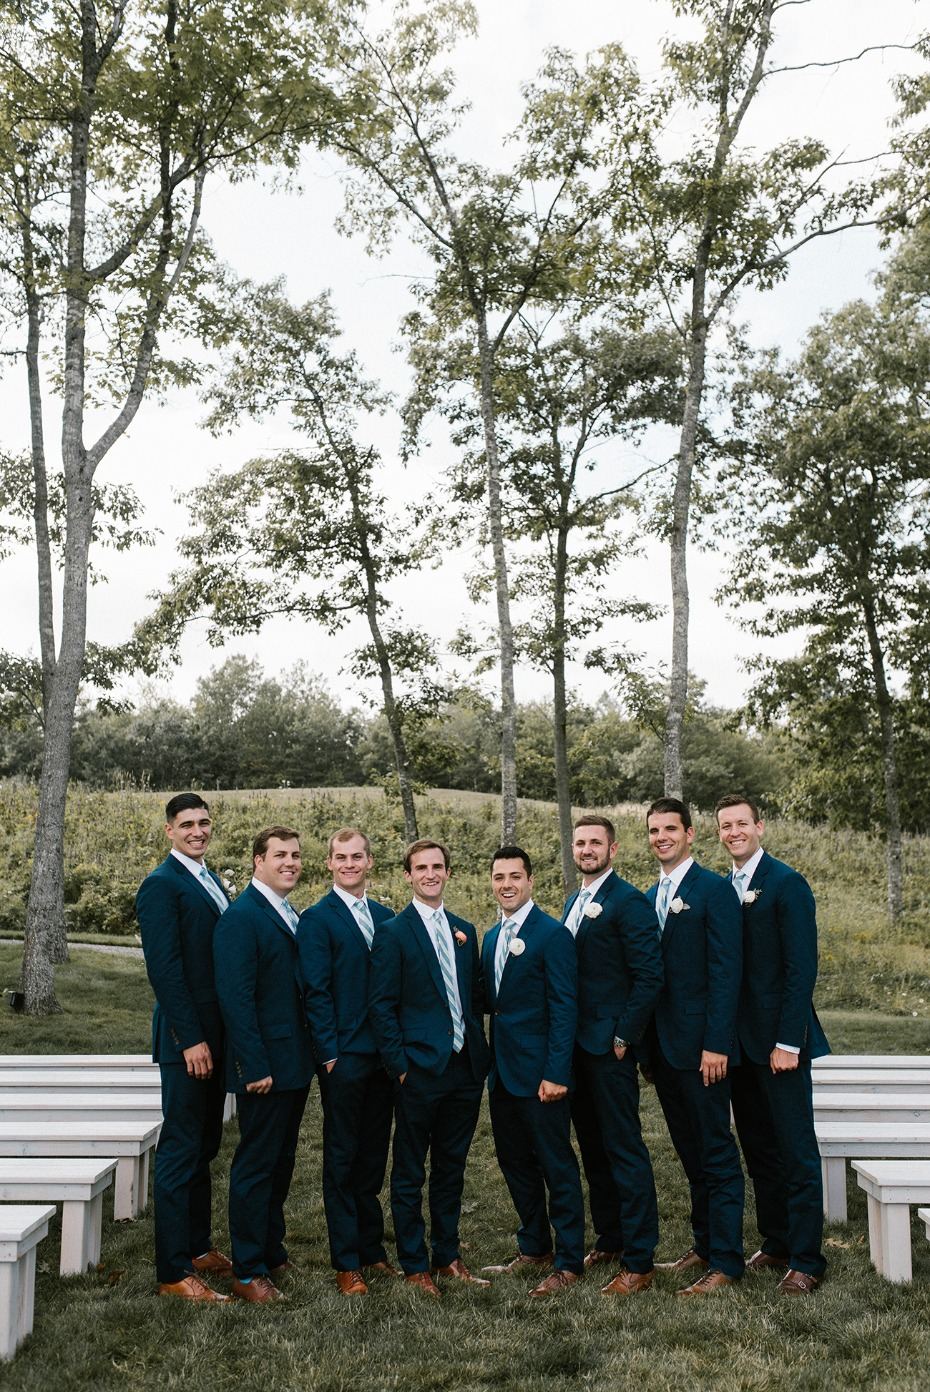 Matching groomsmen in navy suits